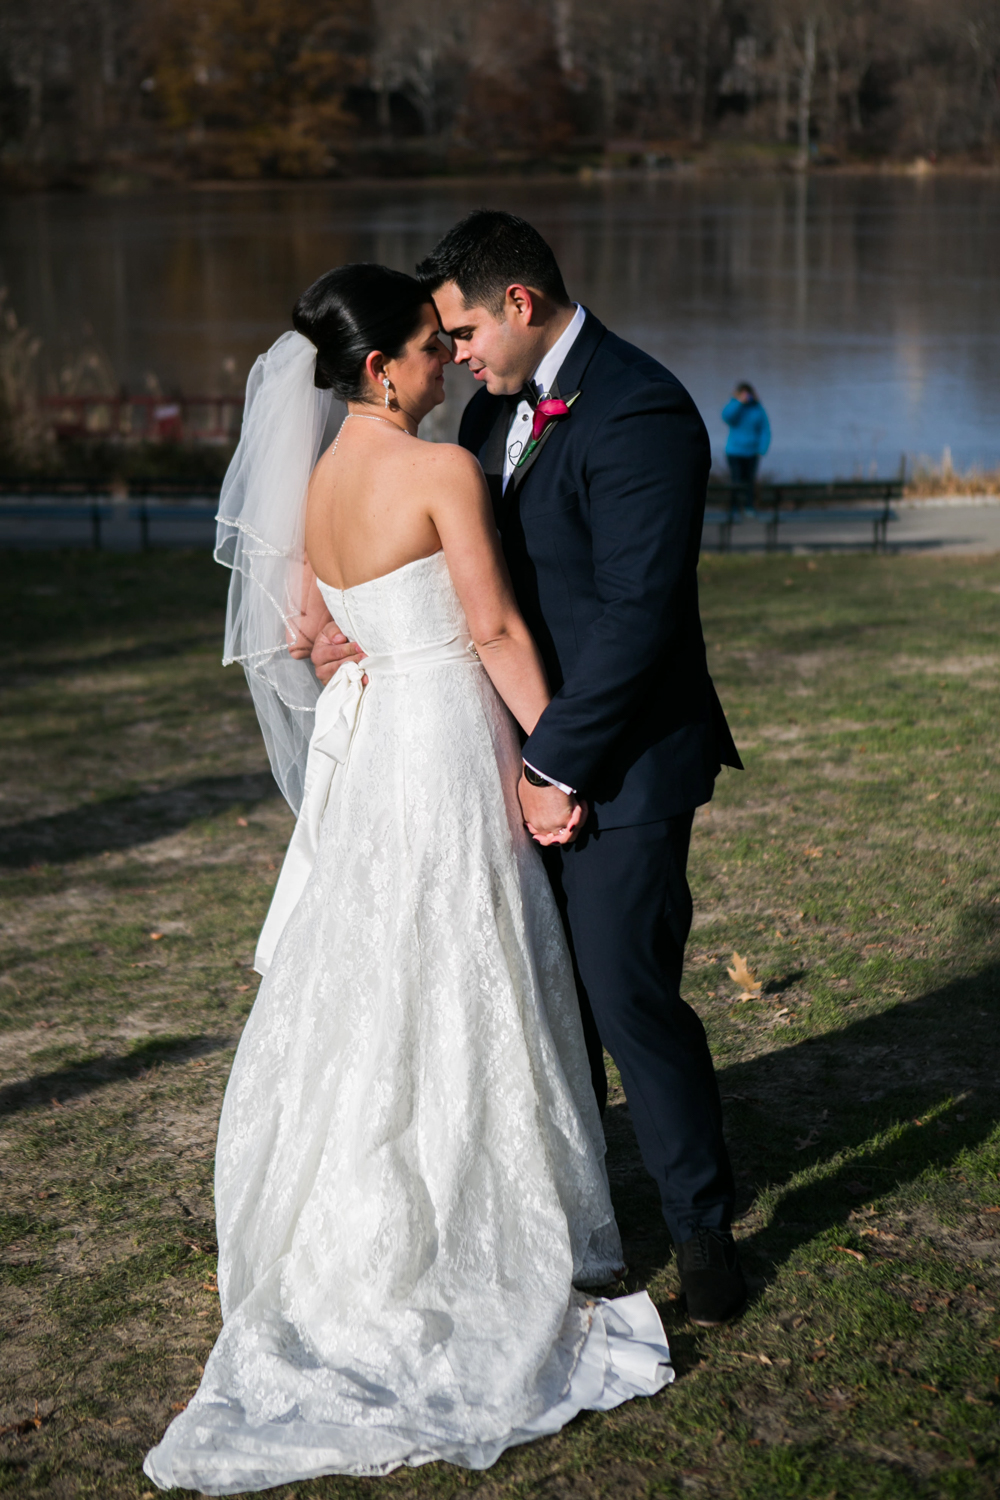 Bride and groom embrace in Central Park